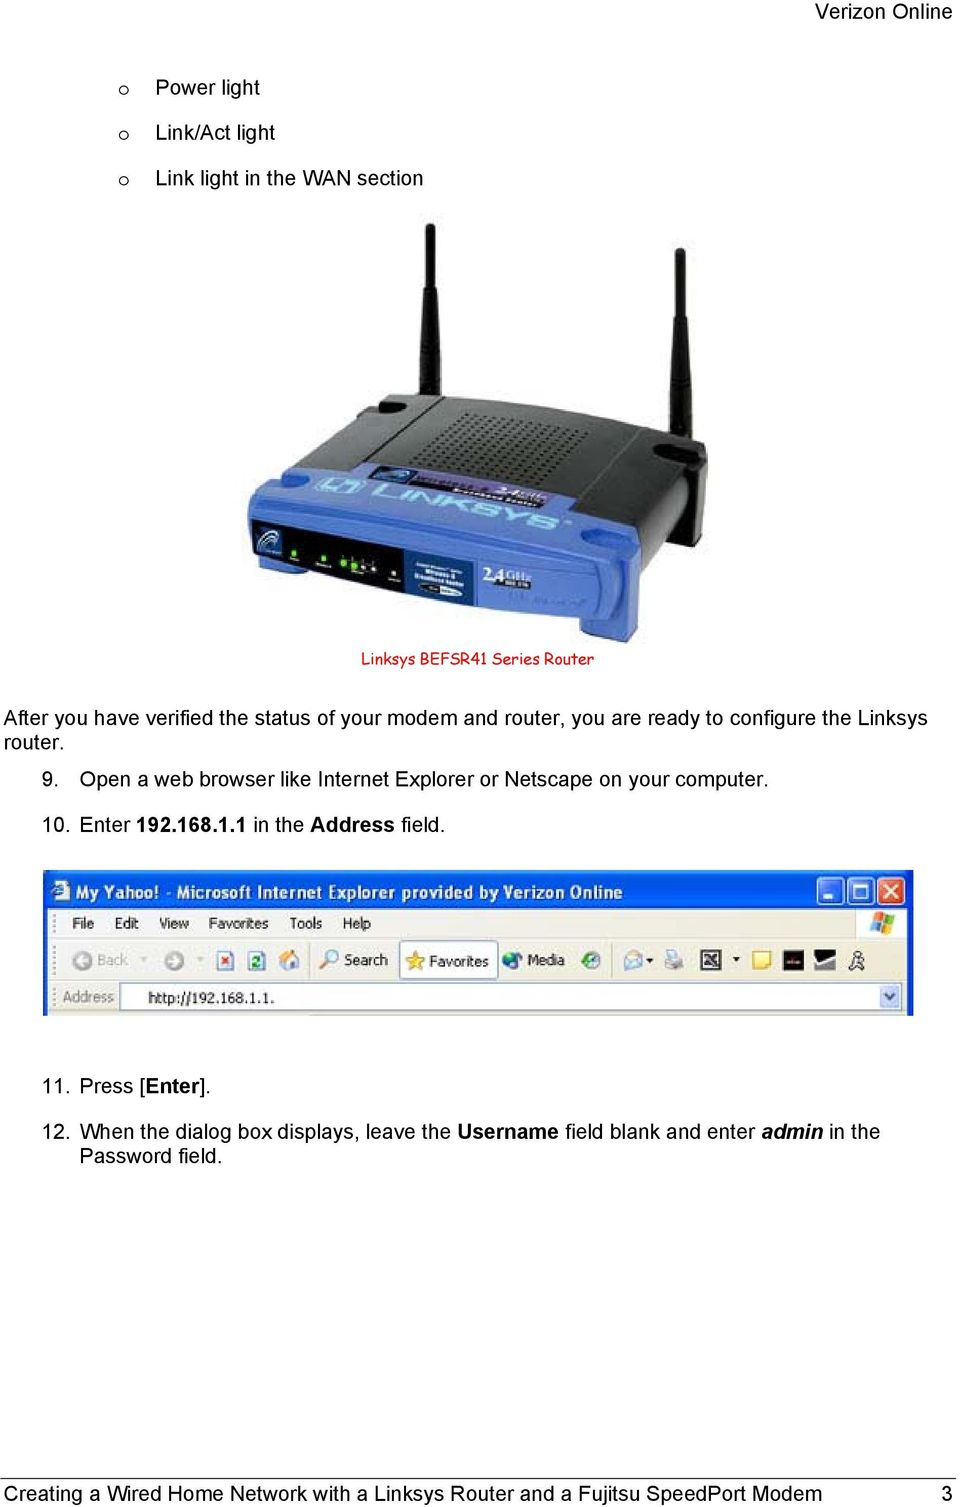 Creating a Wired Home Network with a Linksys Router and a Fujitsu